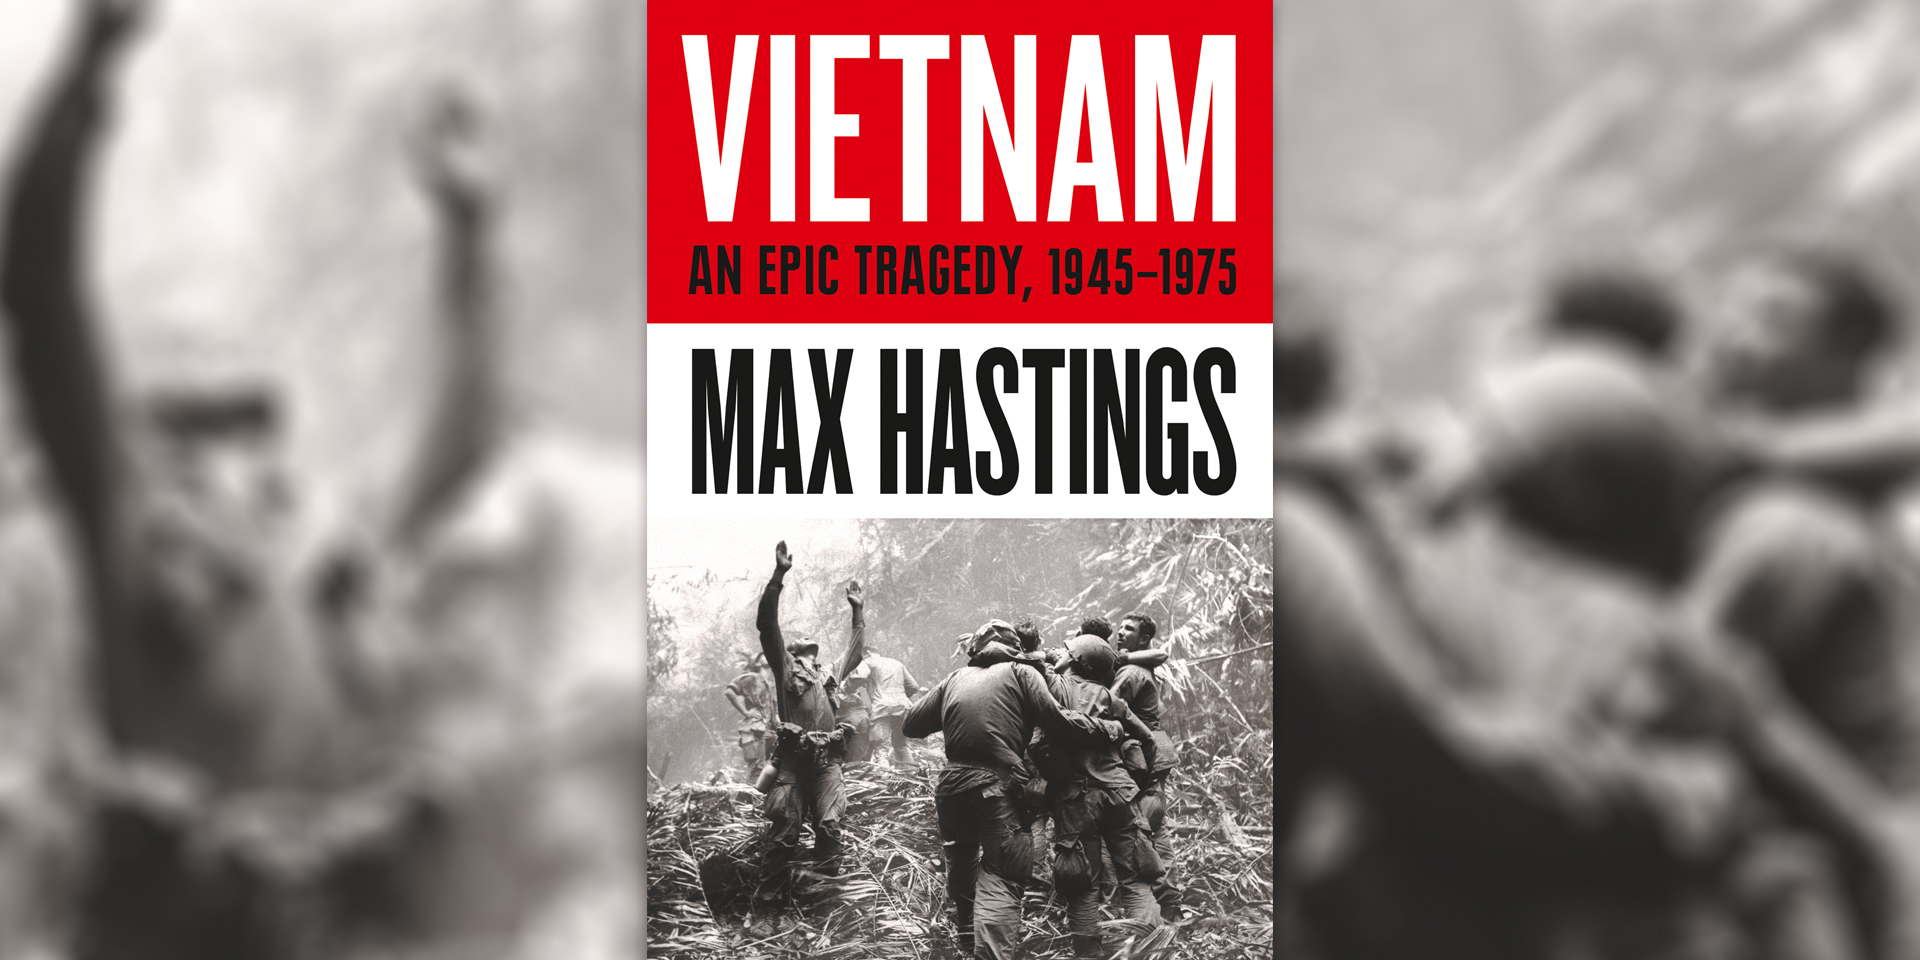 Vietnam an epic tragedy book cover